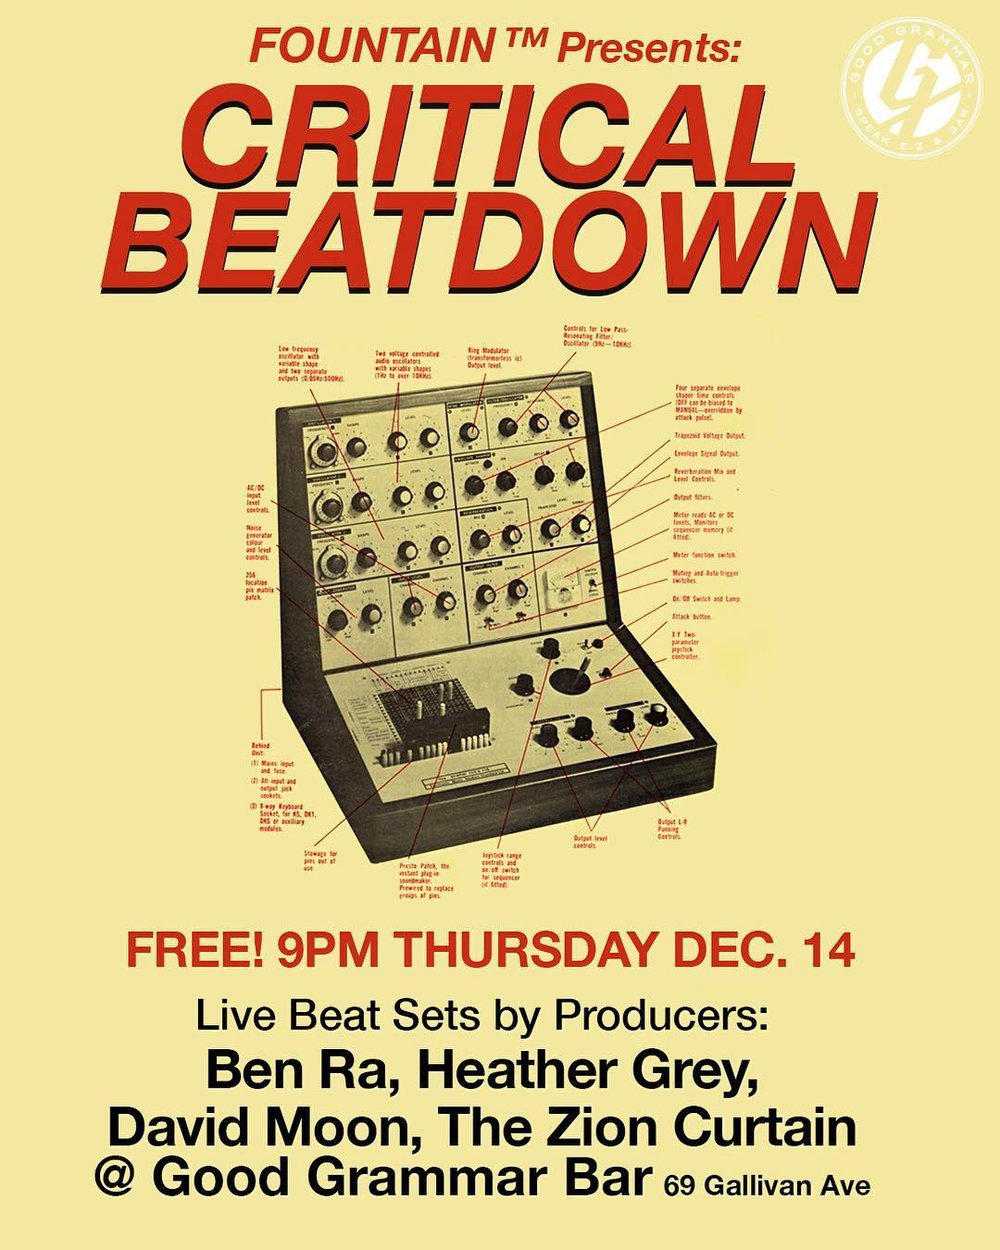 Live beat sets by Producers Ben Ra + Heather Gray + David Moon + The Zion Curtain FREE at Good Grammar Bar 69 Gallivan Ave SLC 21+